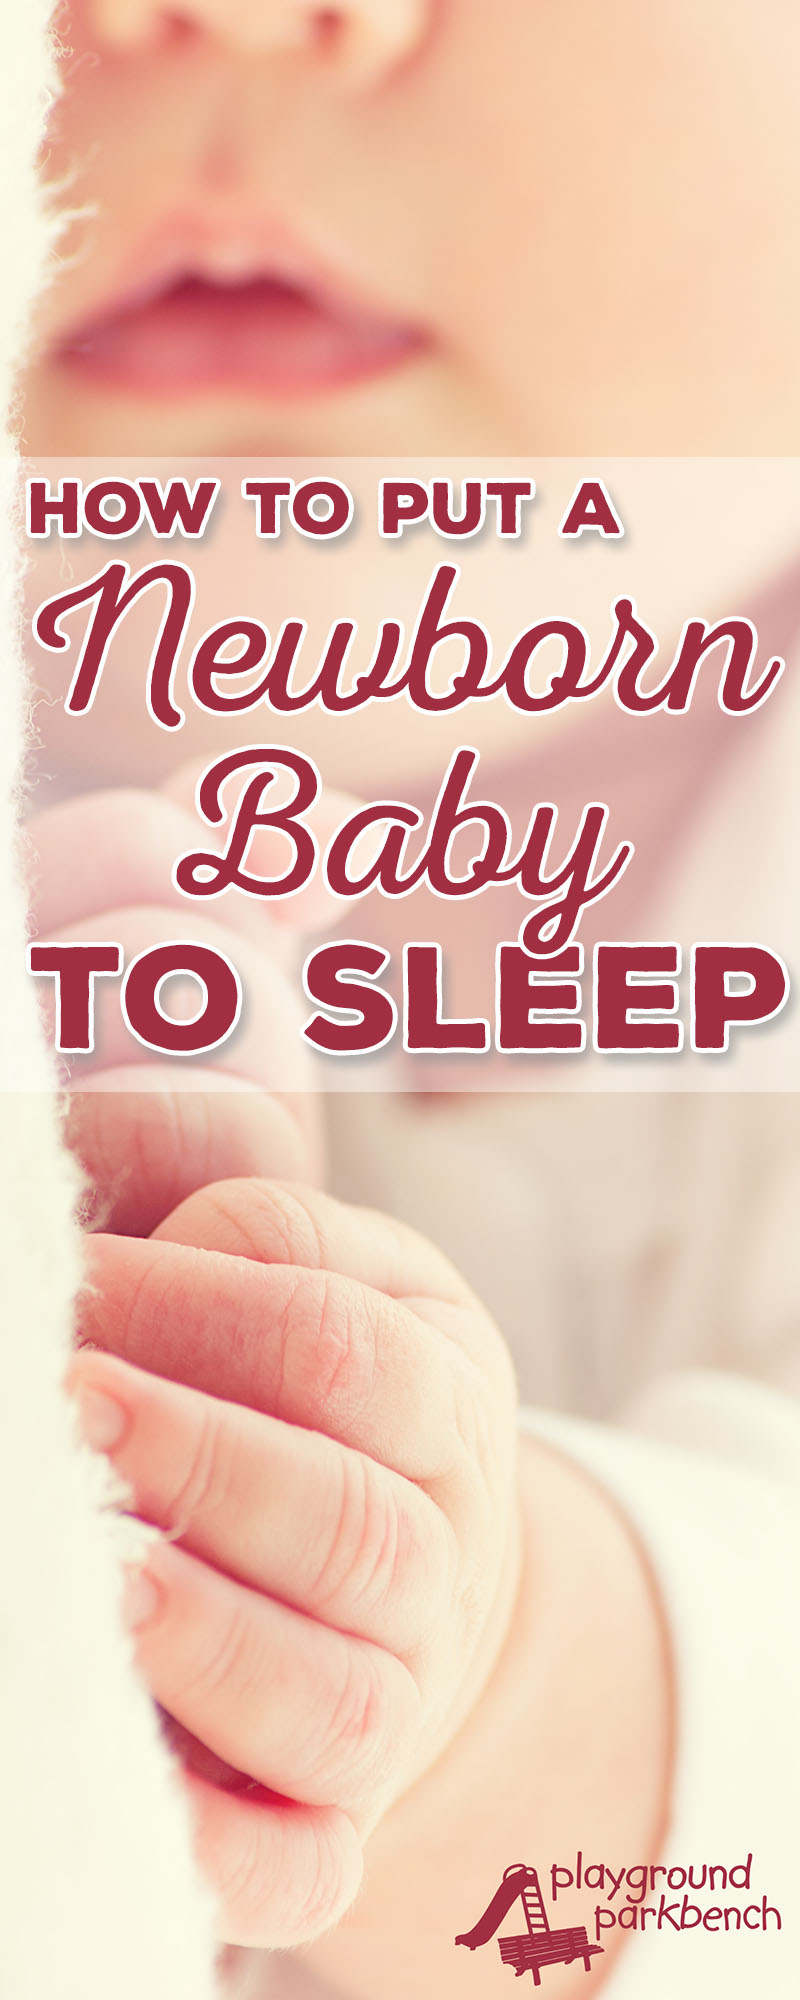 Newborns are too young to formally sleep train - but you can start healthy sleep habits from day one with these simple tips for how to put a newborn baby to sleep